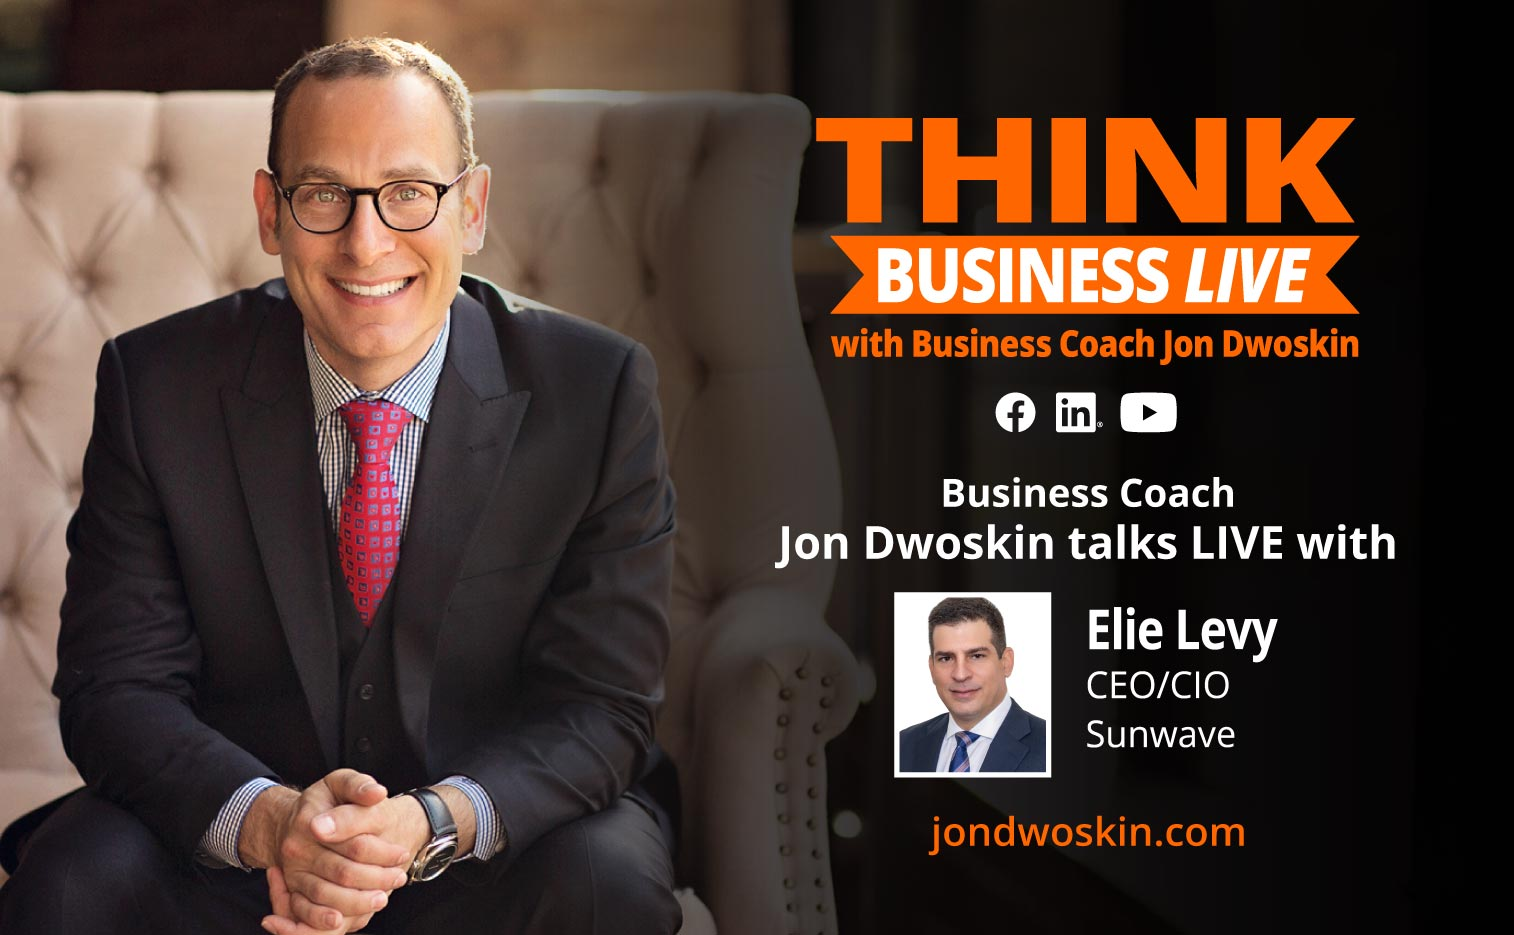 THINK Business LIVE: Jon Dwoskin Talks with Elie Levy